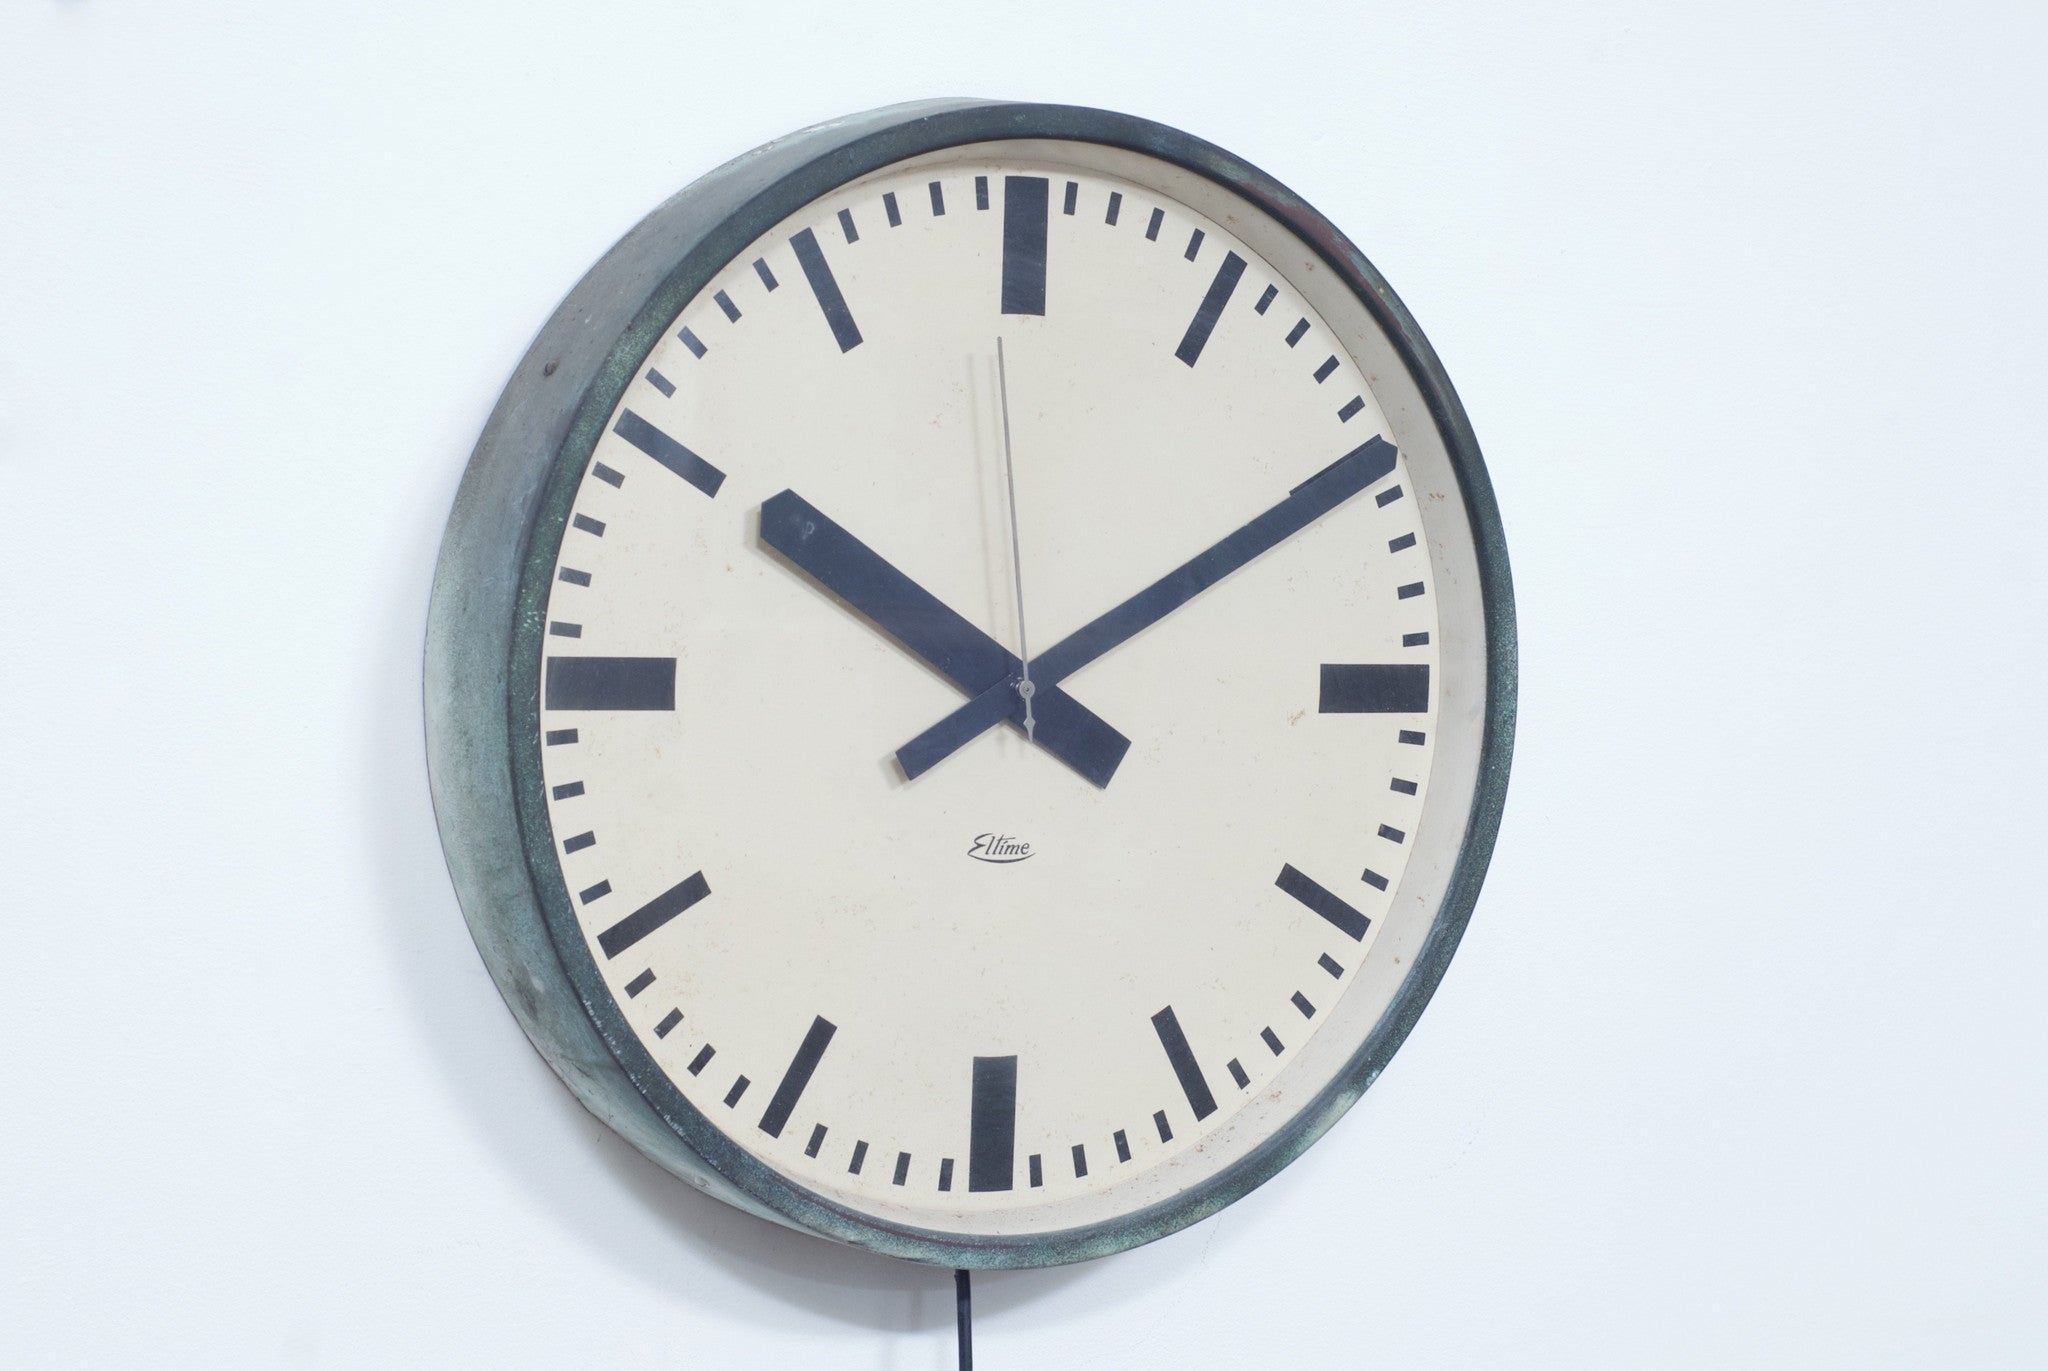 Not specified Copenhagen airport wall clock by Eltime